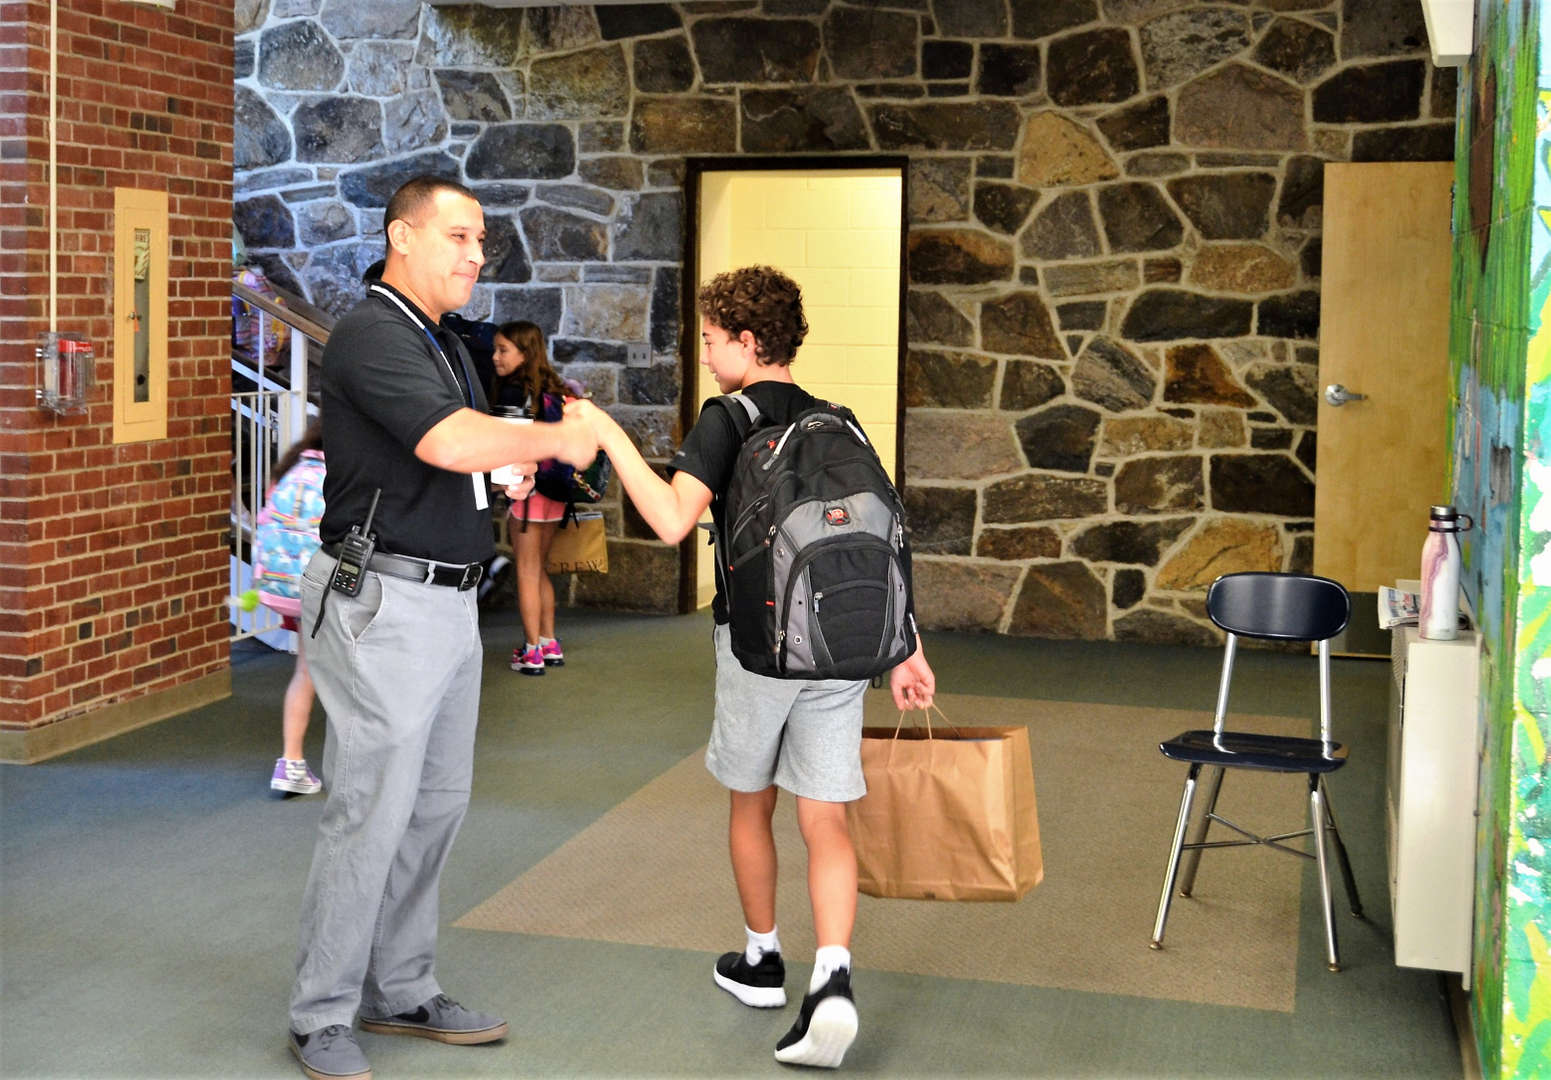 A staff member greets a student on the first day of school.